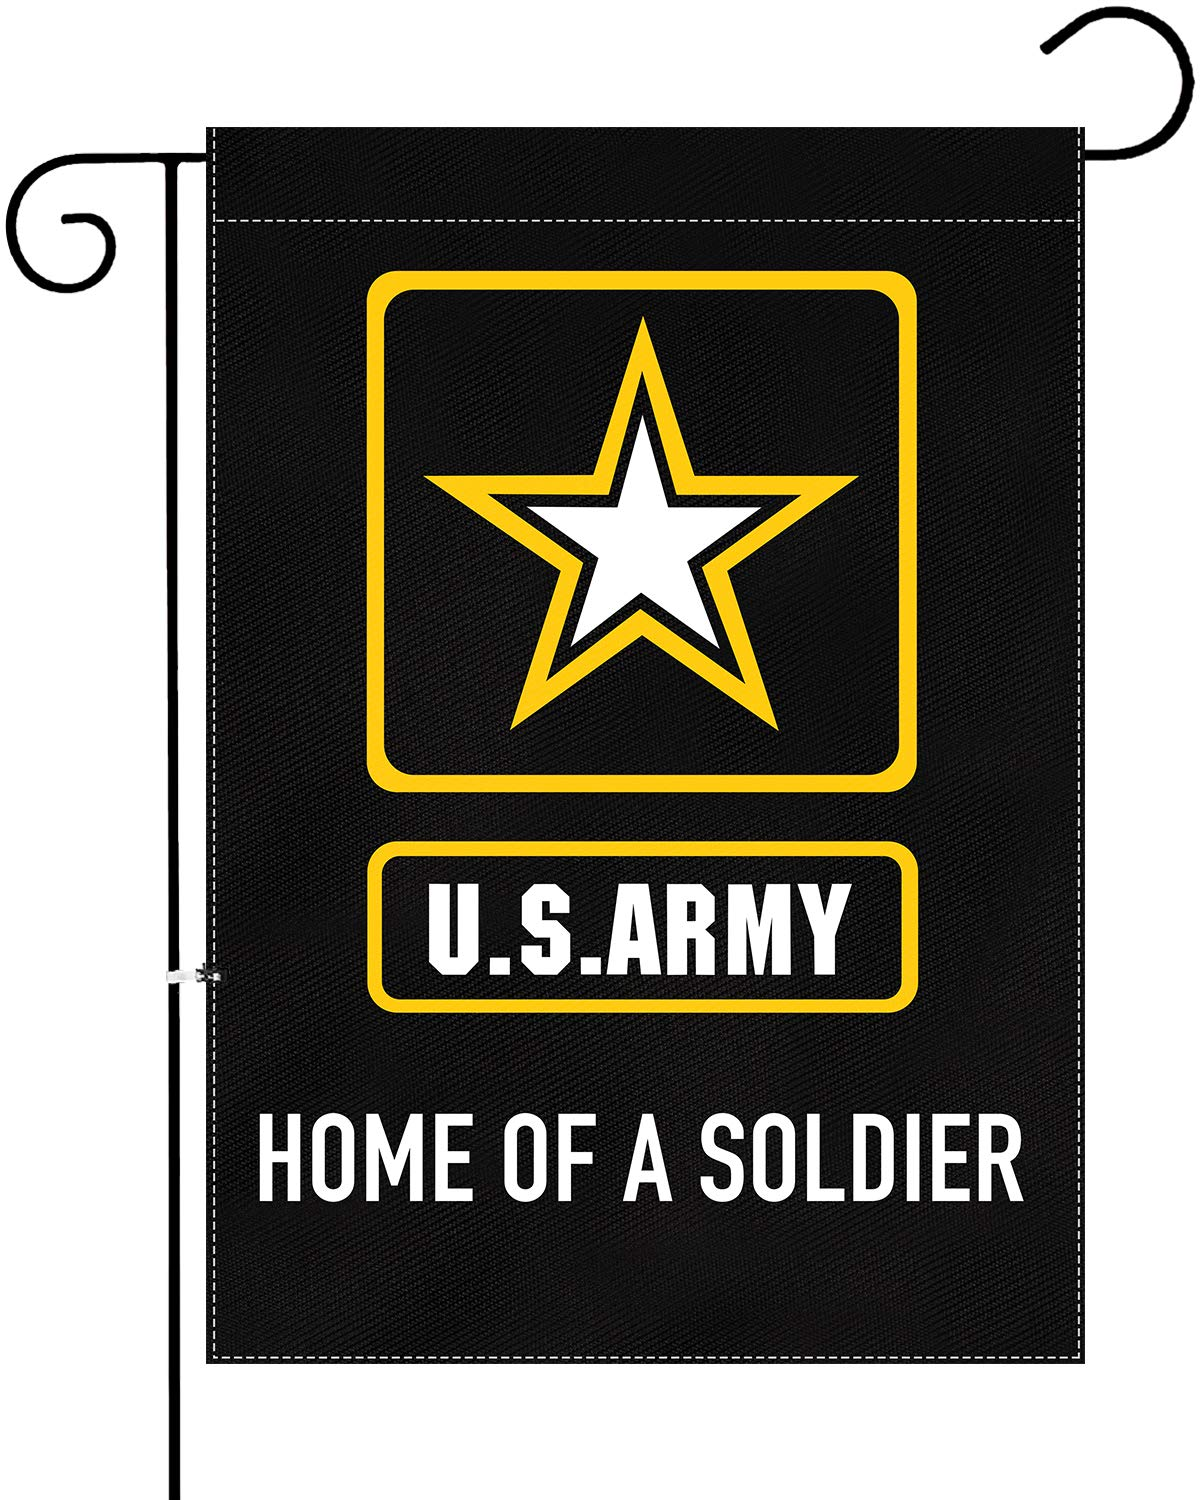 XIFAN Premium Garden Flag for US Army Home of A Soldier Double Sided Small Yard House Decoration 12.5 x 18 Inch